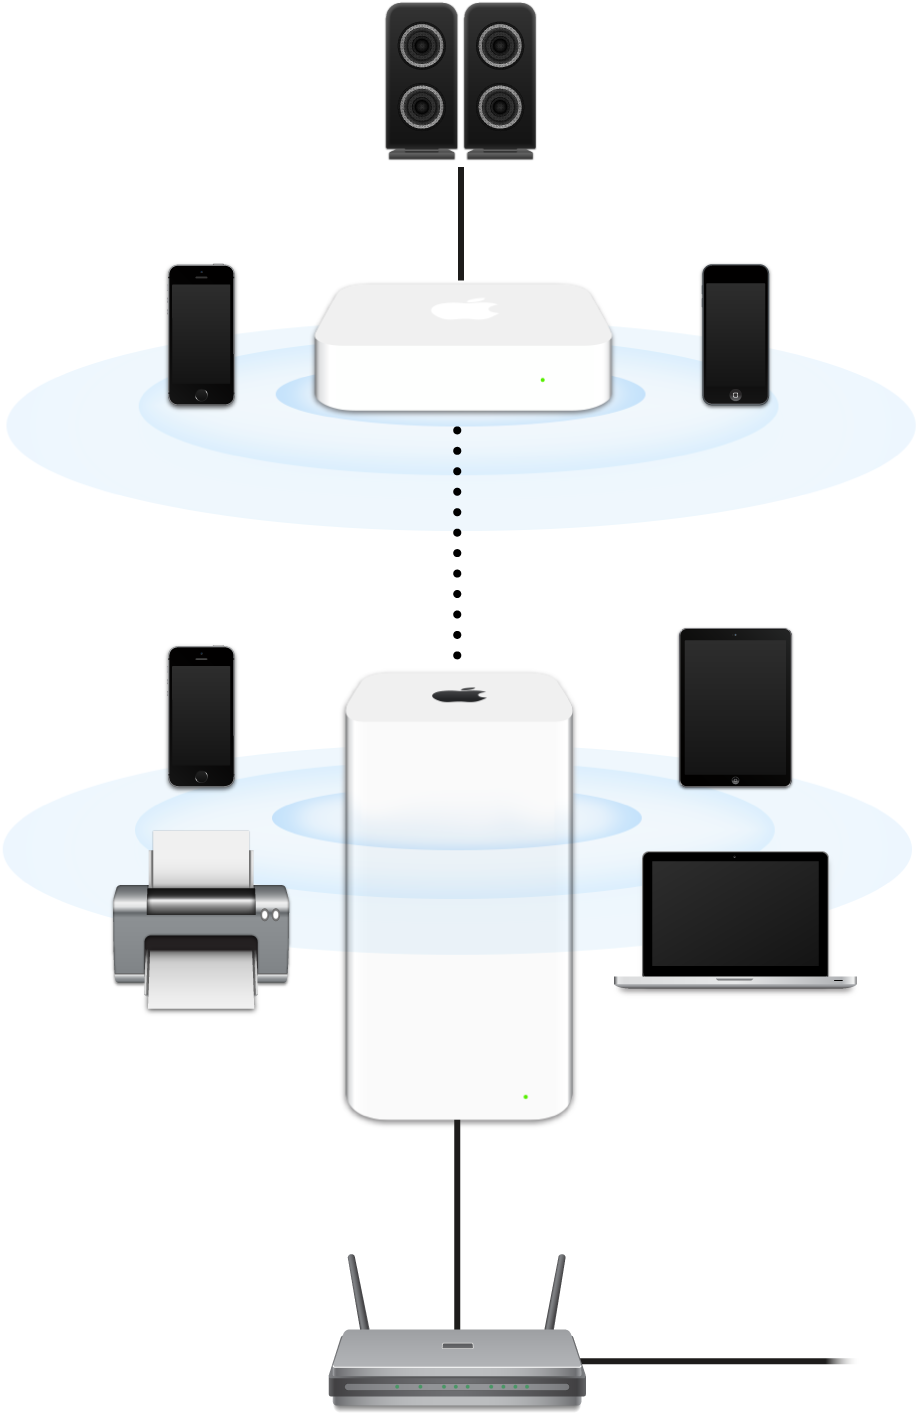 An extended network, including an AirPort Extreme and an AirPort Express, connected to a modem and transmitting to a variety of devices.